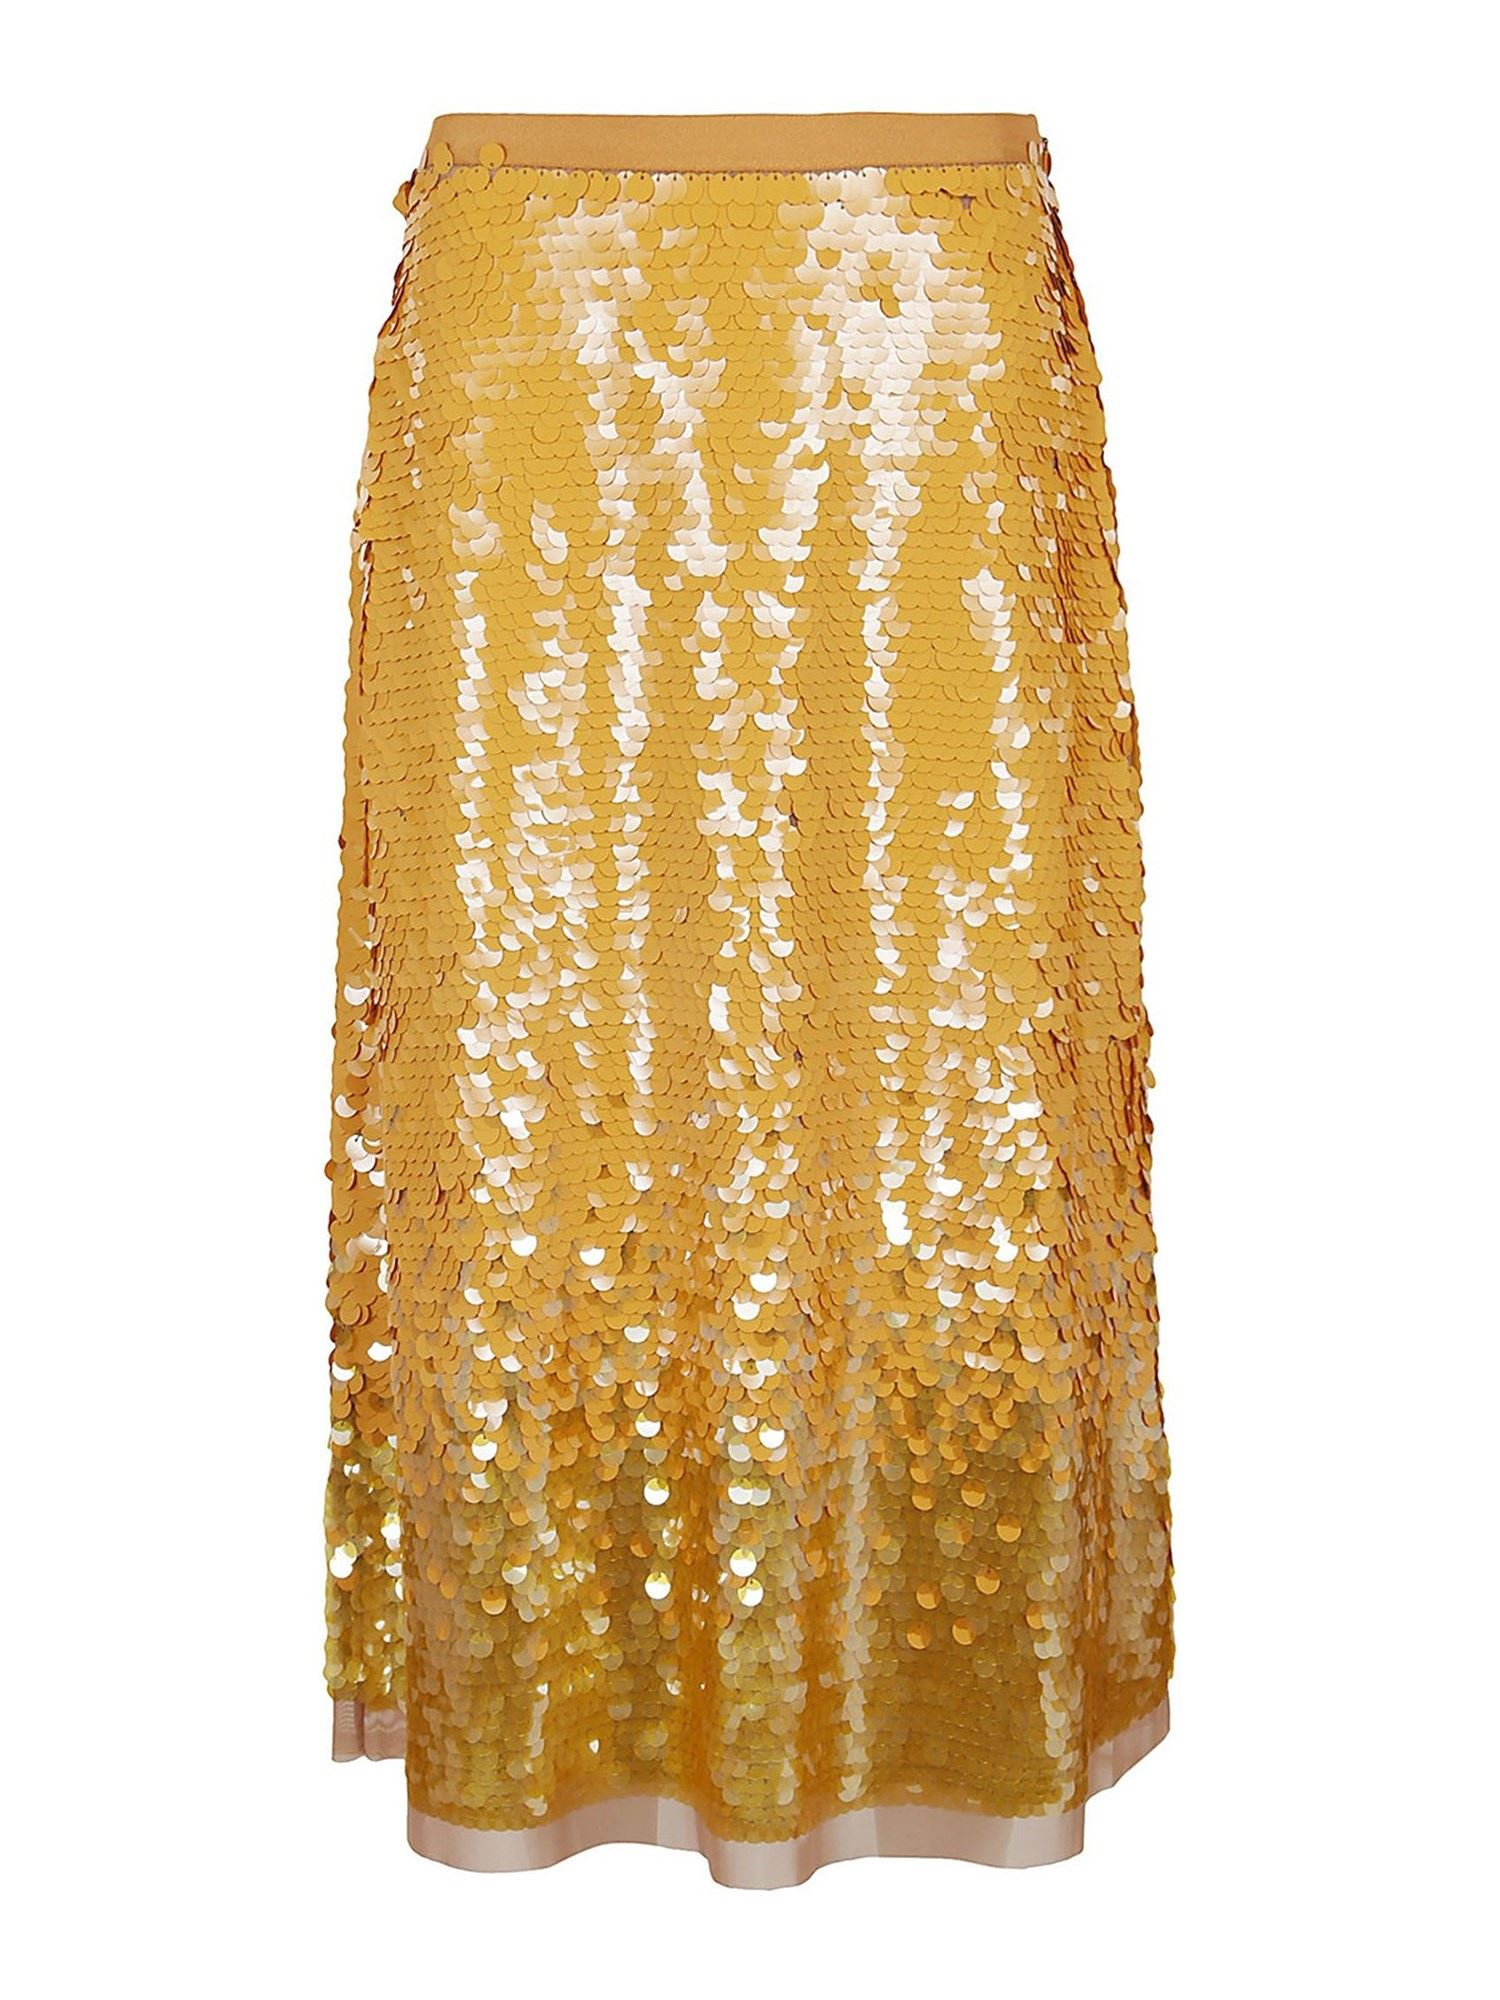 Tory Burch SEQUINS SKIRT IN GOLD COLOR